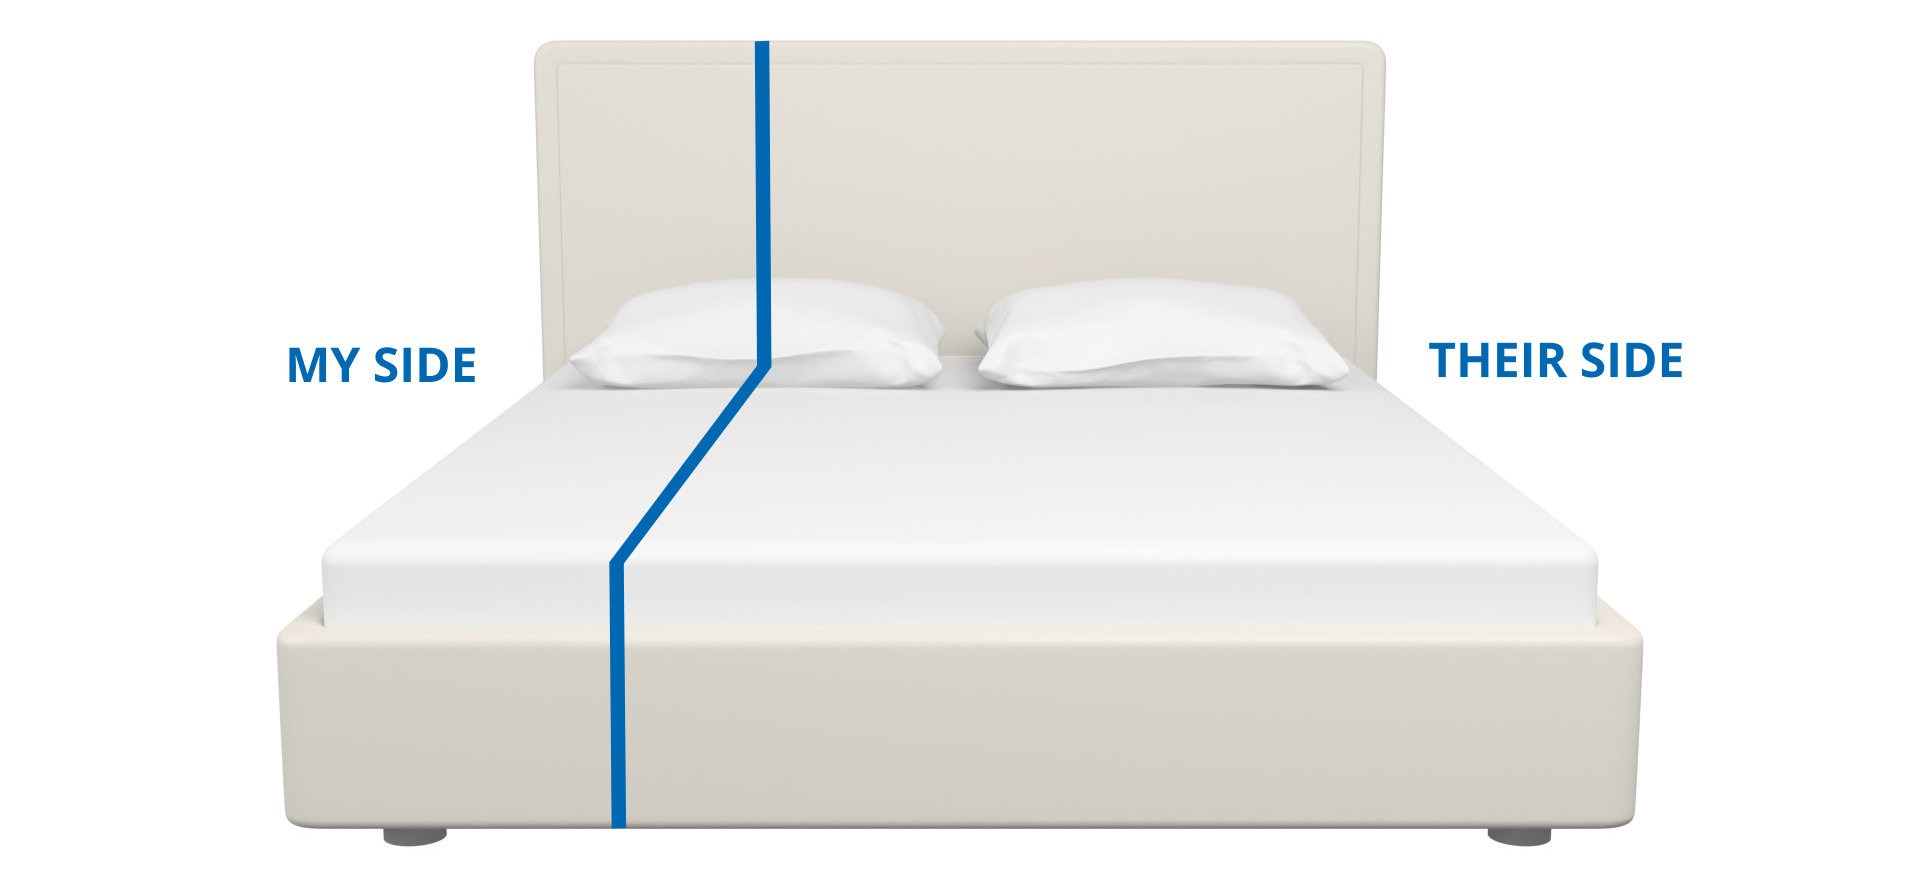 National Bed Federation Bed Sizes UK: Bed and Mattress Size Guide